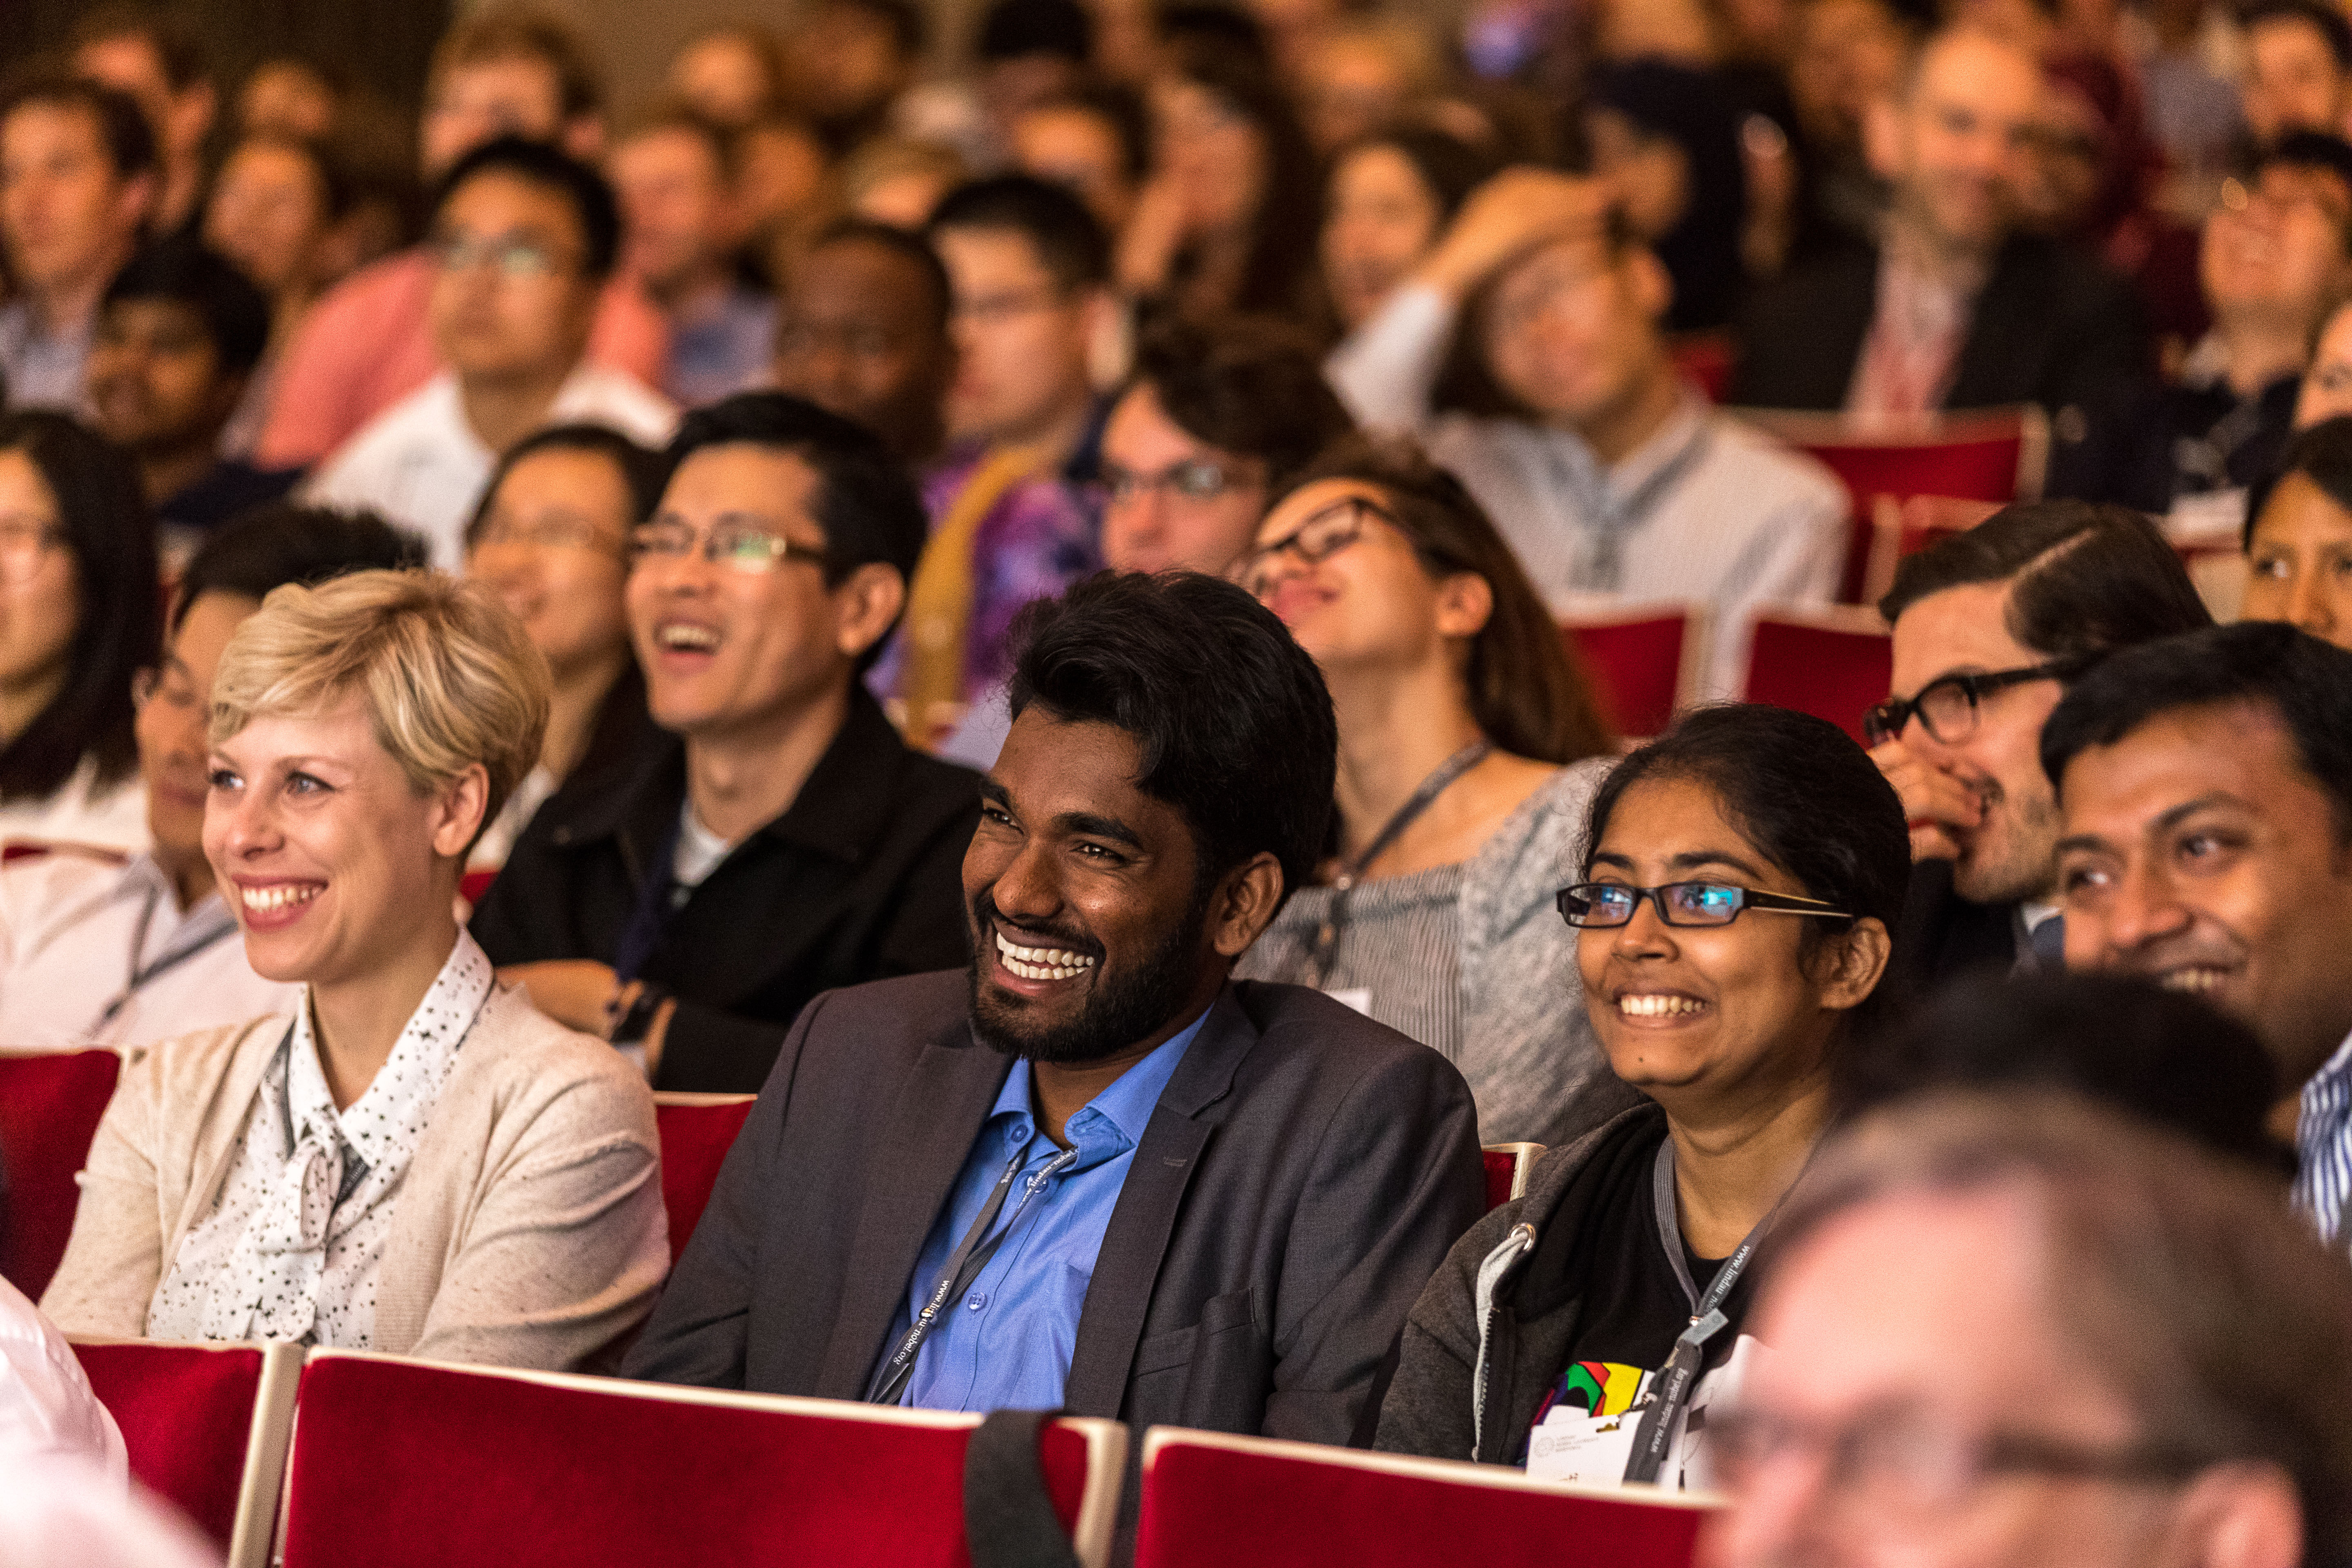 67th Lindau Nobel Laureate Meeting Chemistry, 25.06.2017 - 30.06.2017, Lindau, Germany, Picture/Credit: Christian Flemming/Lindau Nobel Laureate Meetings Audience in Peter Agre's lecture